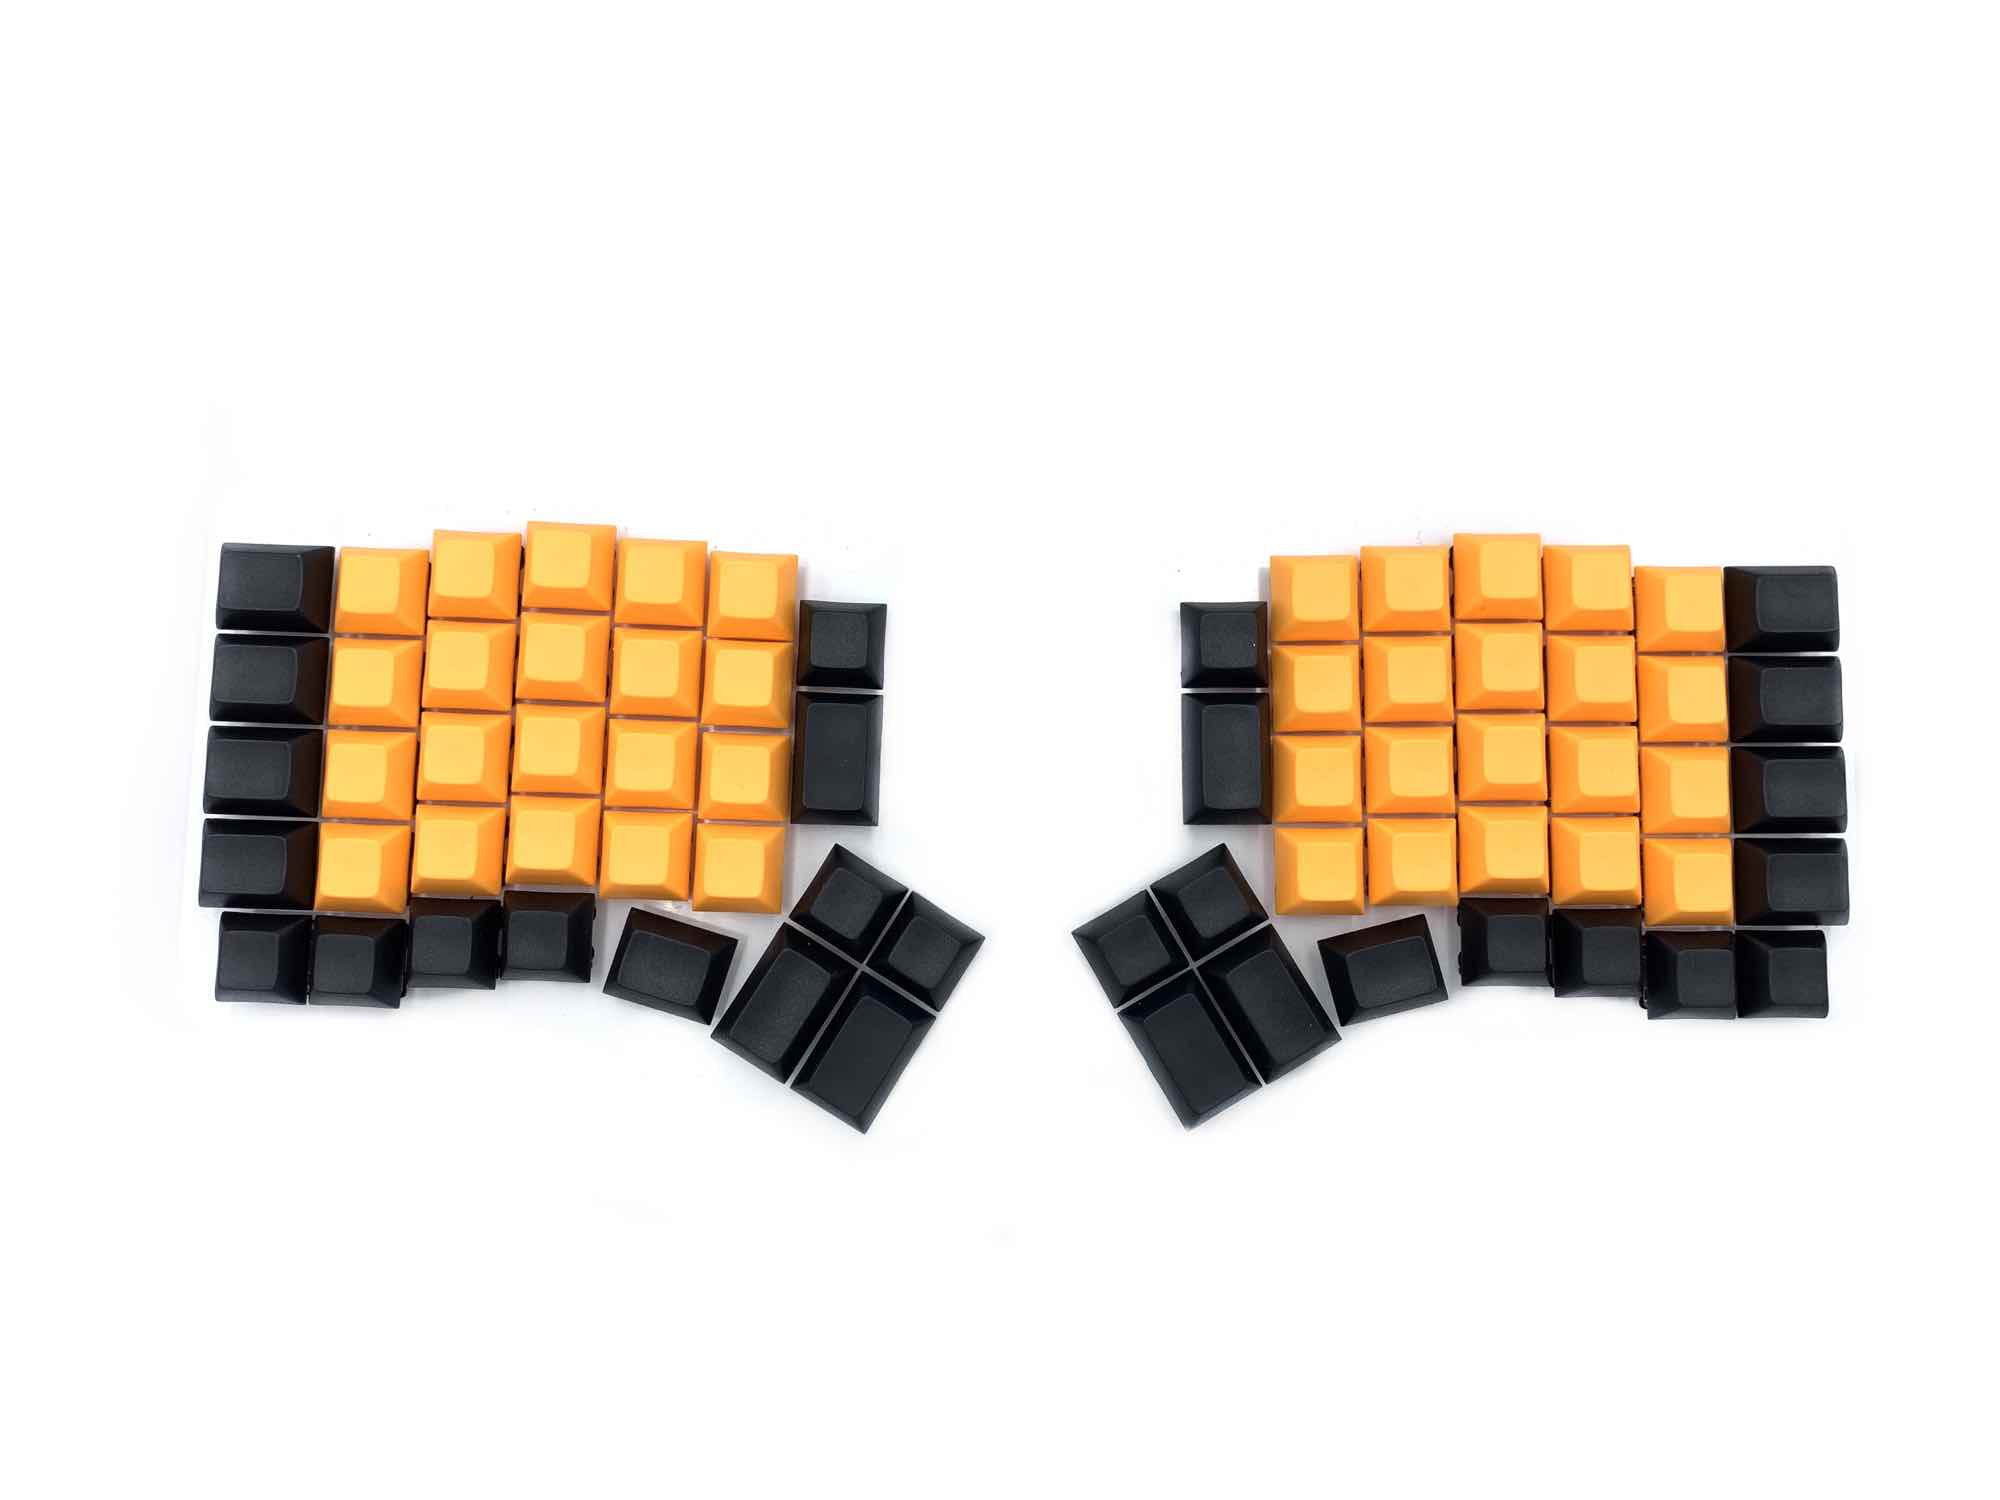 DSA KeyCaps (left & right keyboards) ReDox (LIMITED EDITION)